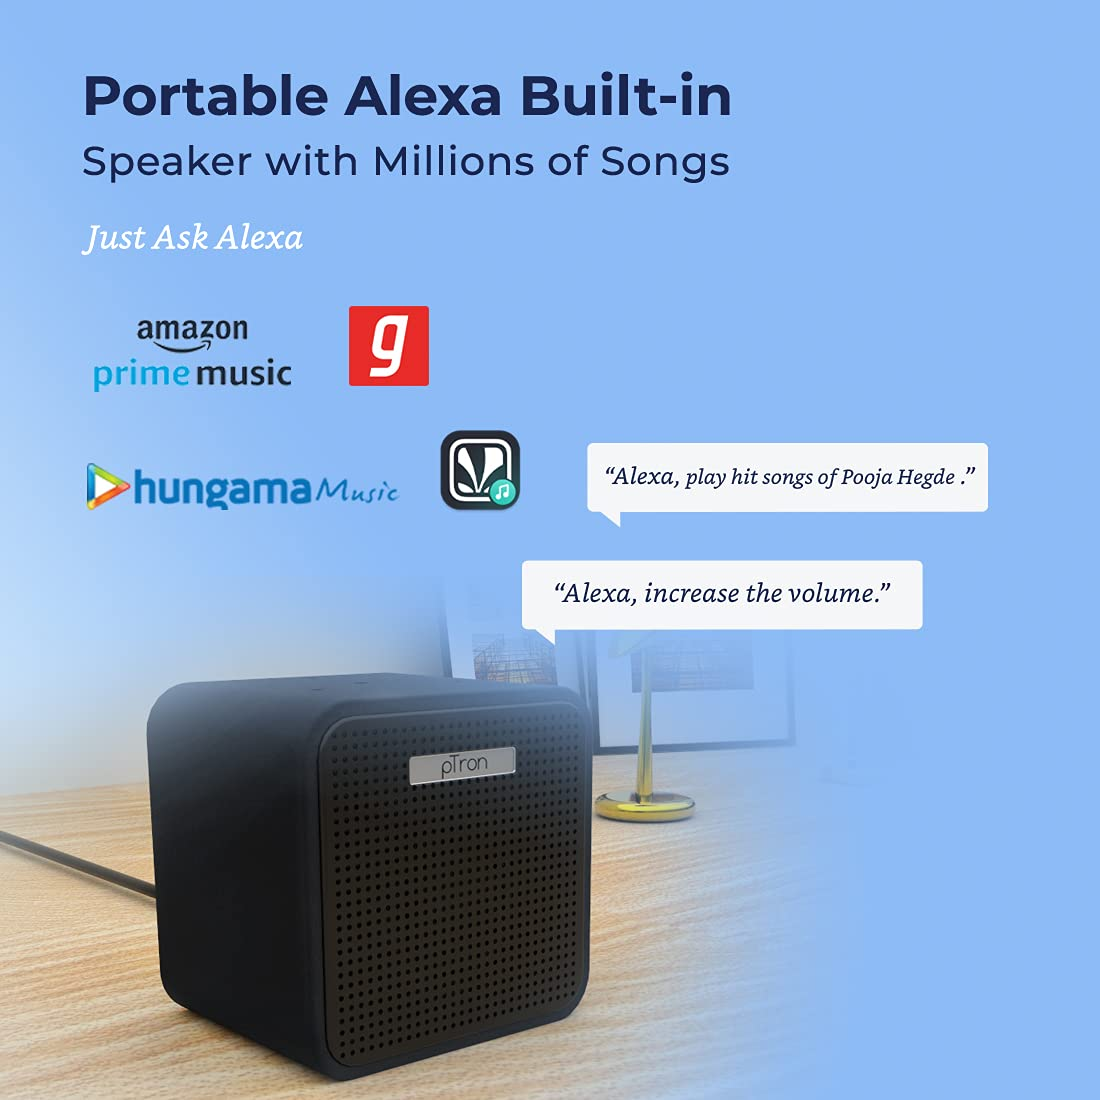 Palred launches India's cheapest Alexa speaker at 1,799